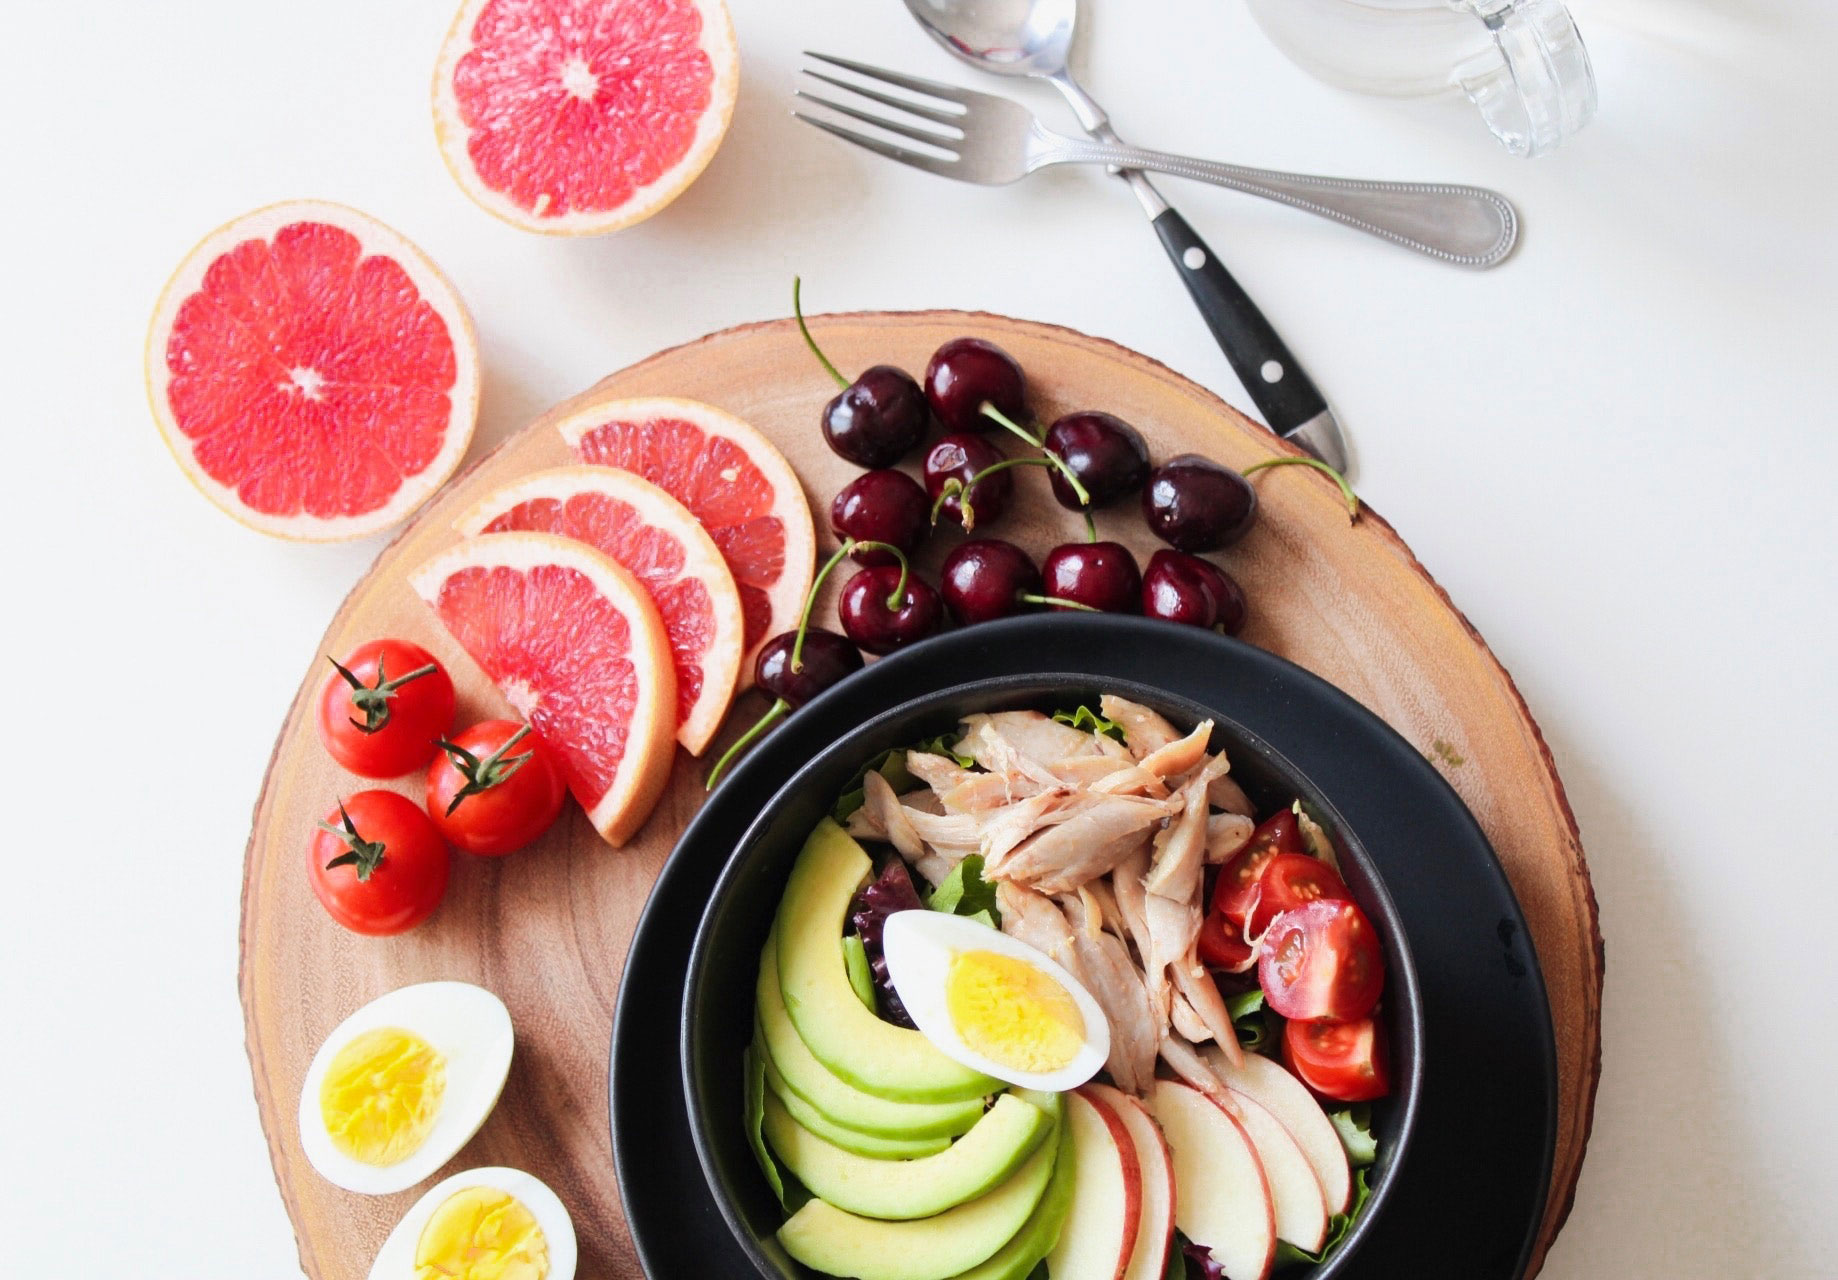 HEALTH TIP #2 - By Bryan Lucas | July 3, 2018A healthy diet is a key component of your overall wellness.